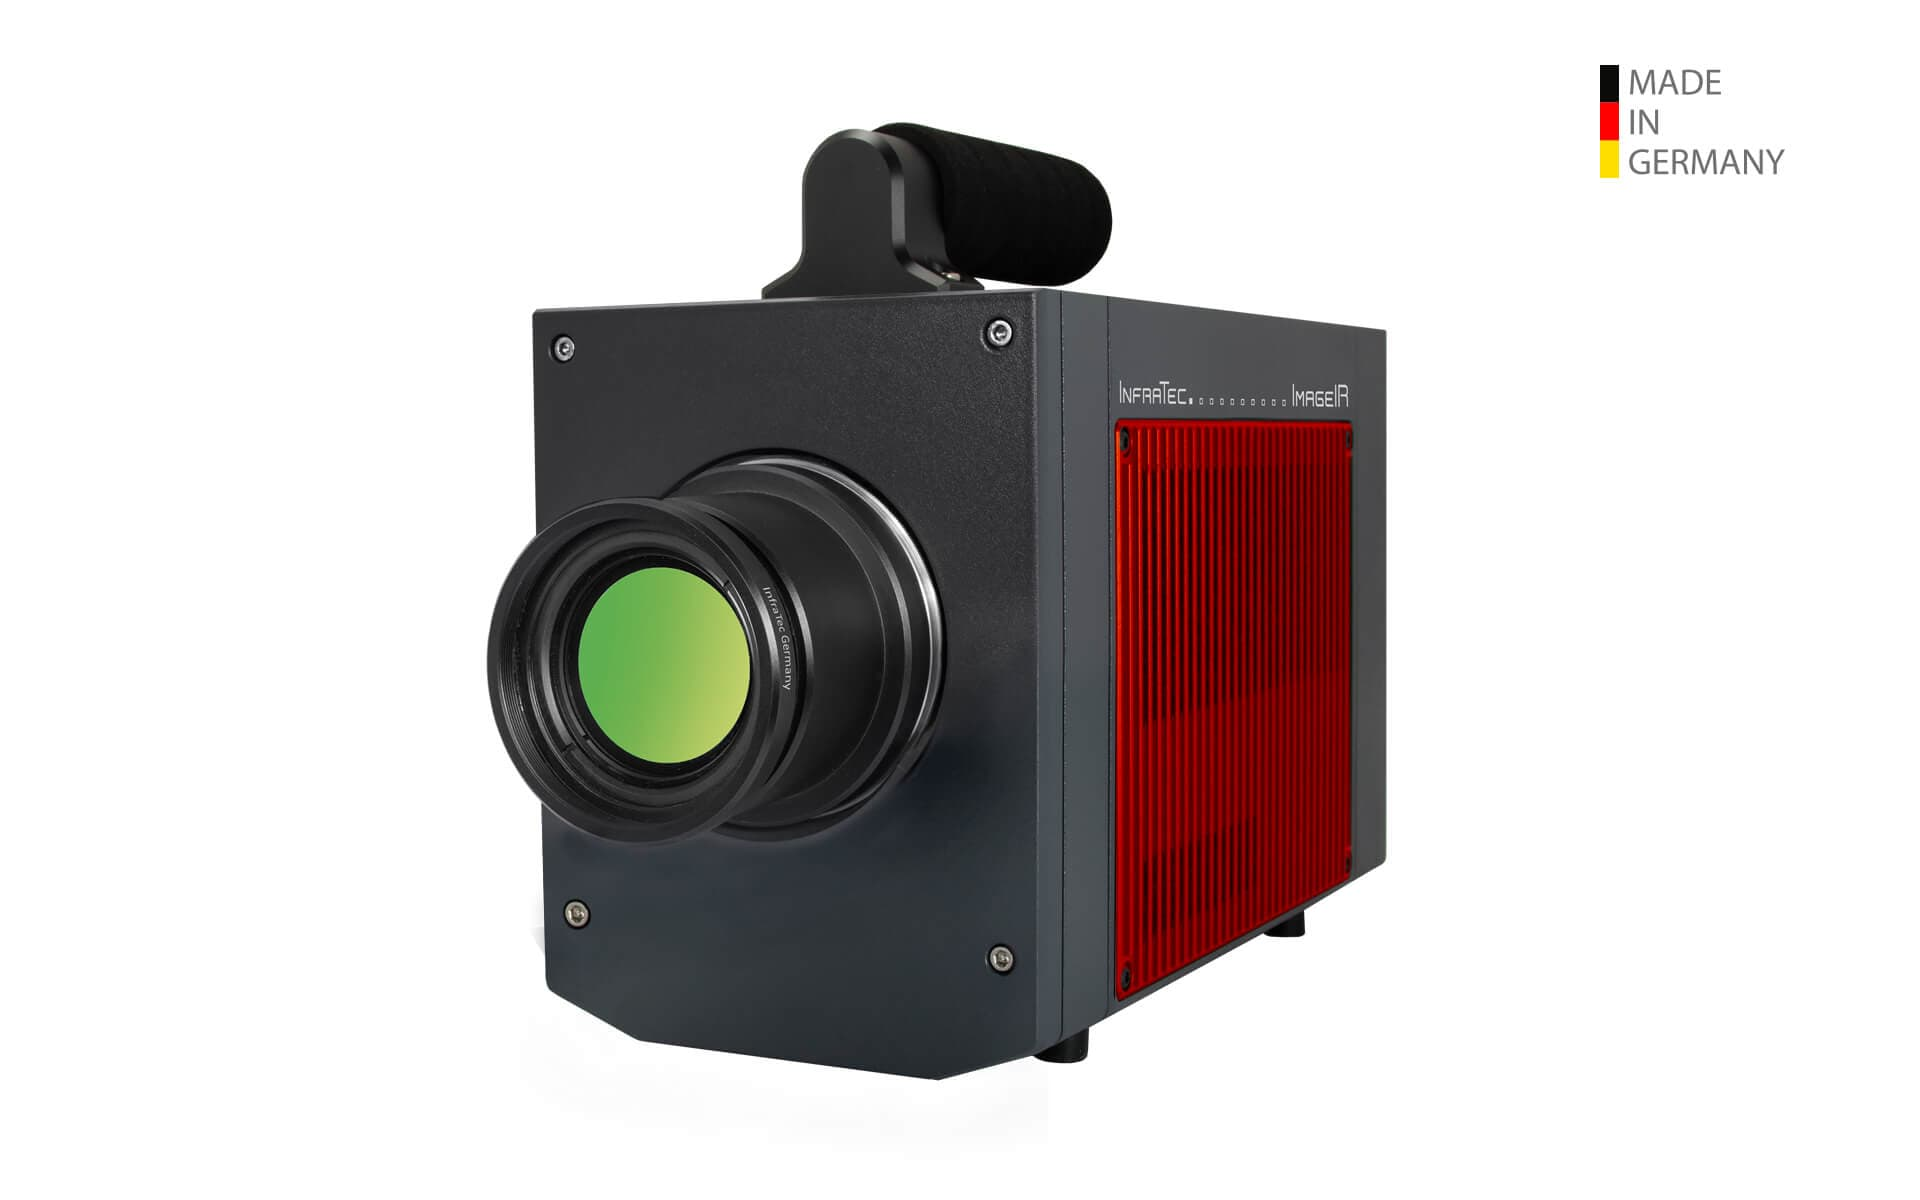 Infrared camera ImageIR® 9400 from InfraTec